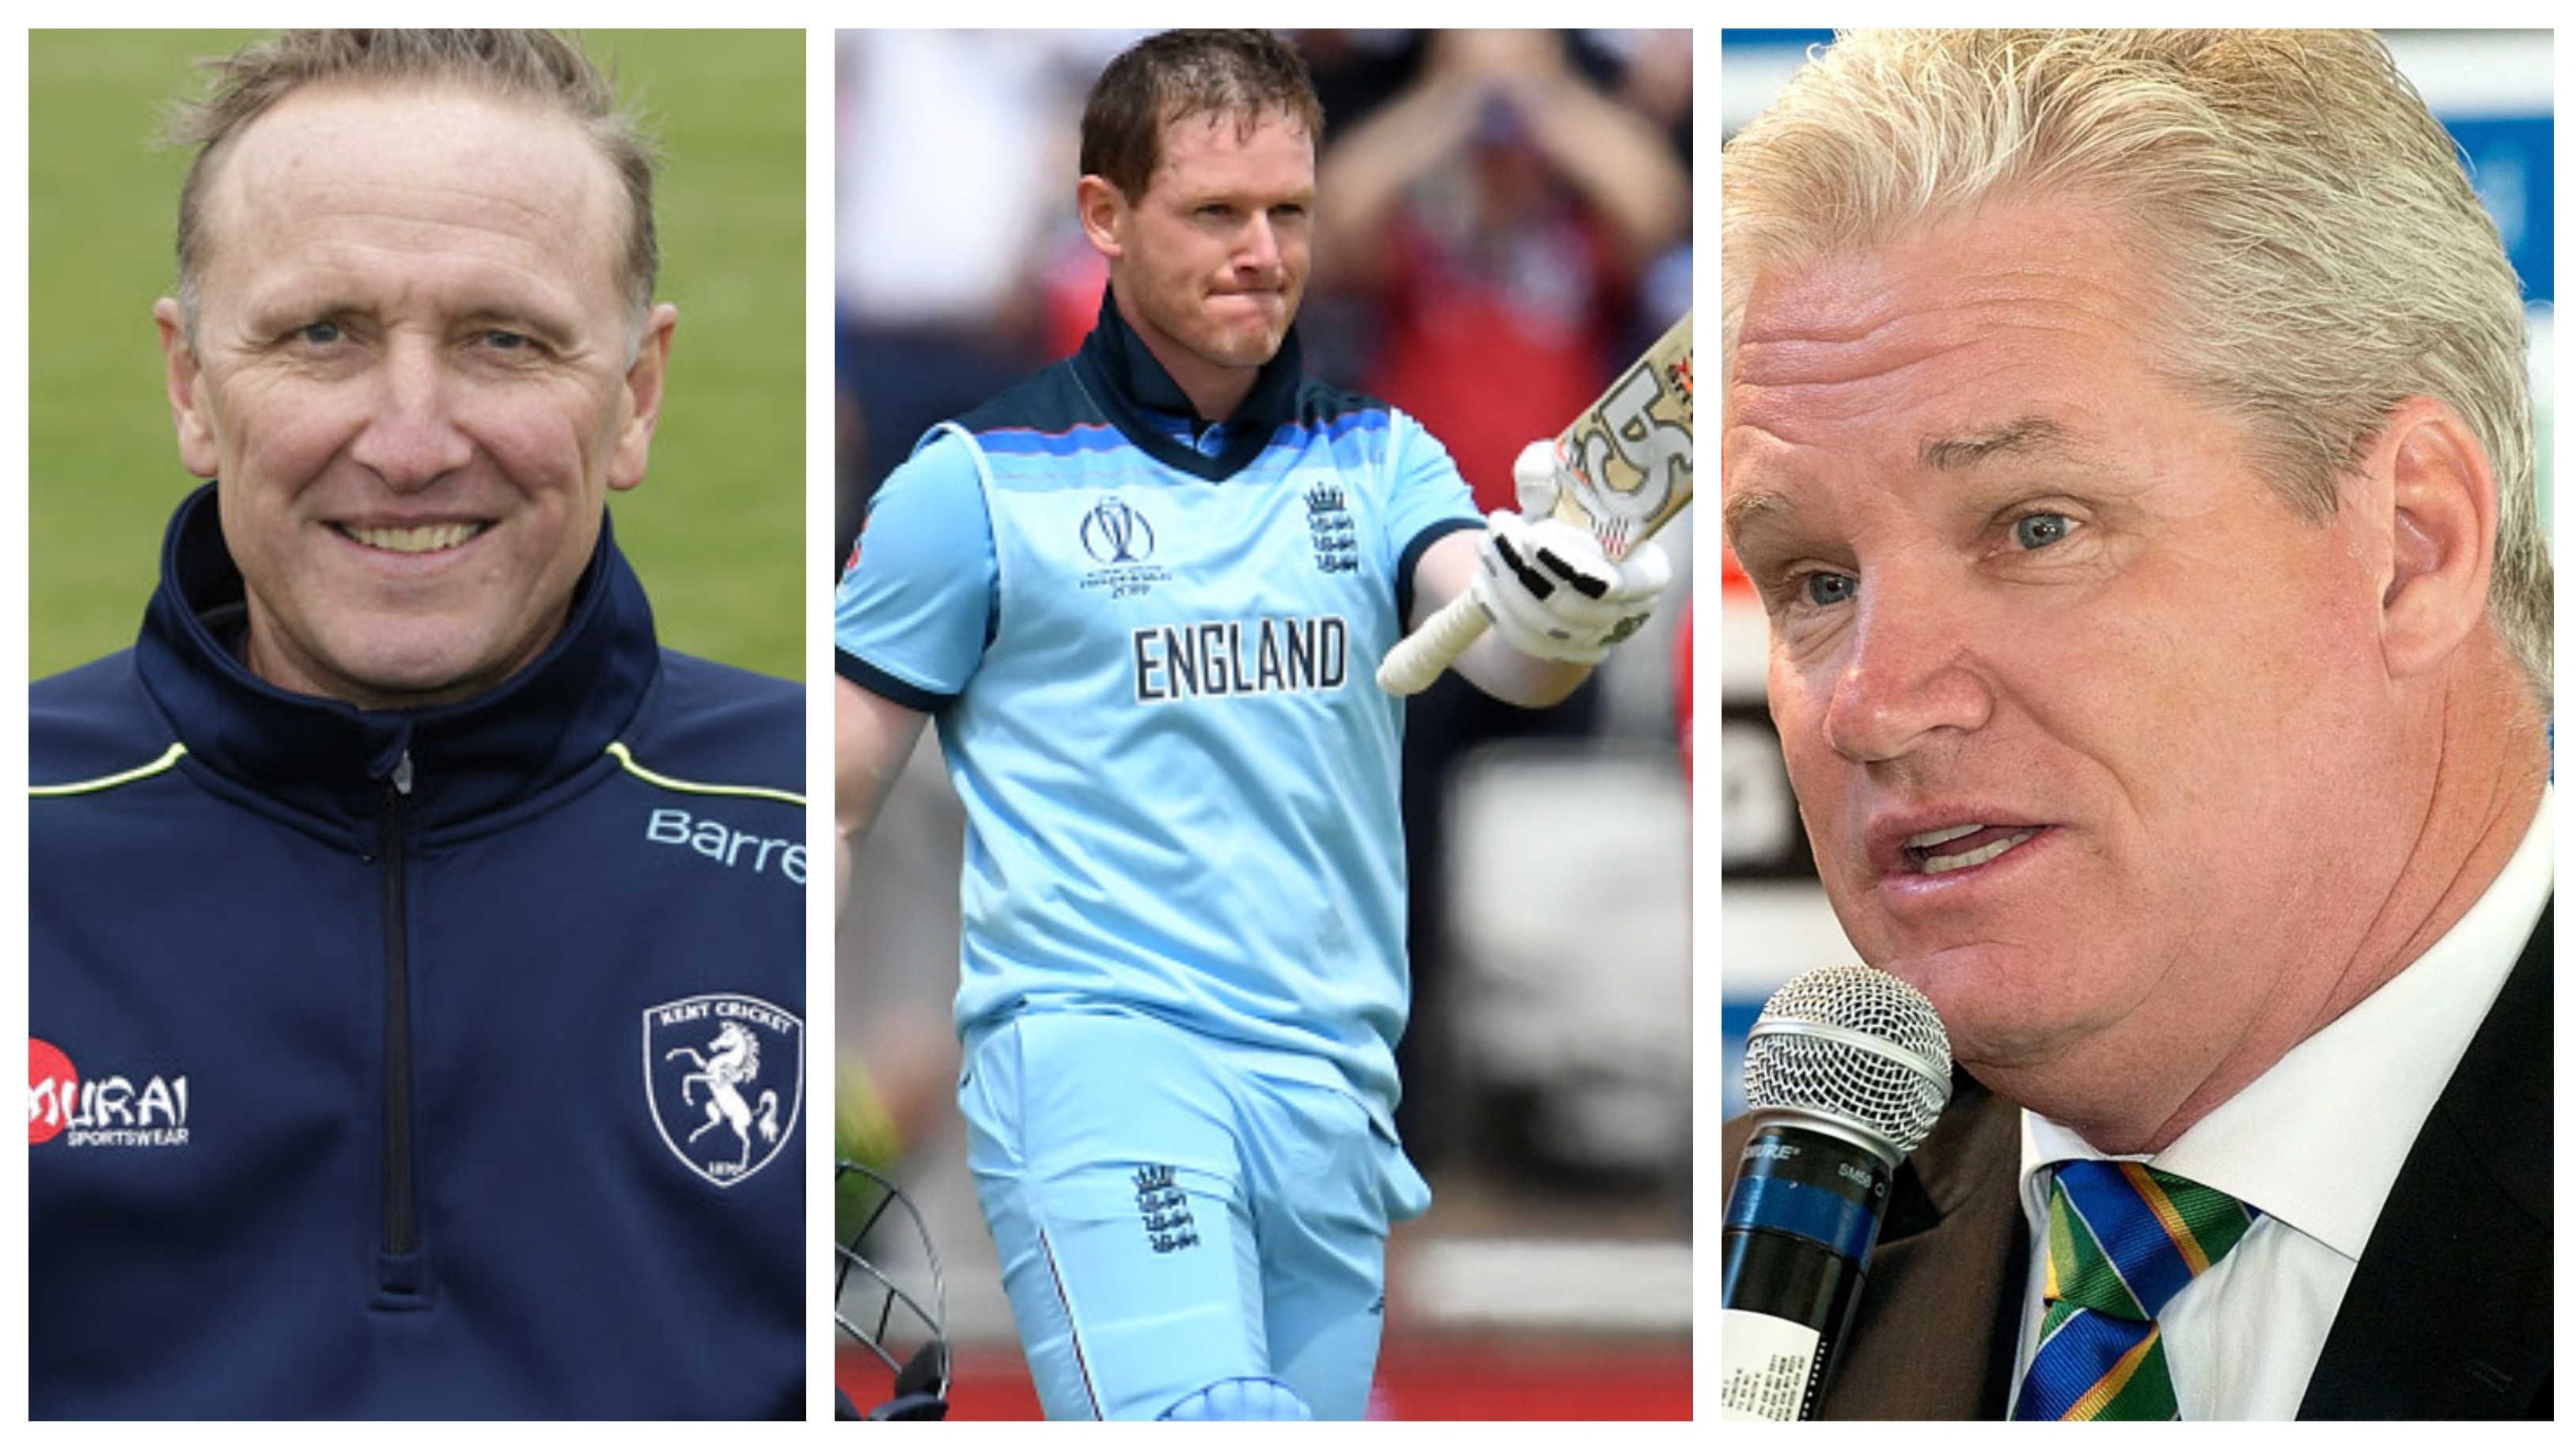 CWC 2019: ENG v AFG – Twitterverse in awe as Eoin Morgan's whirlwind ton blows away Afghanistan